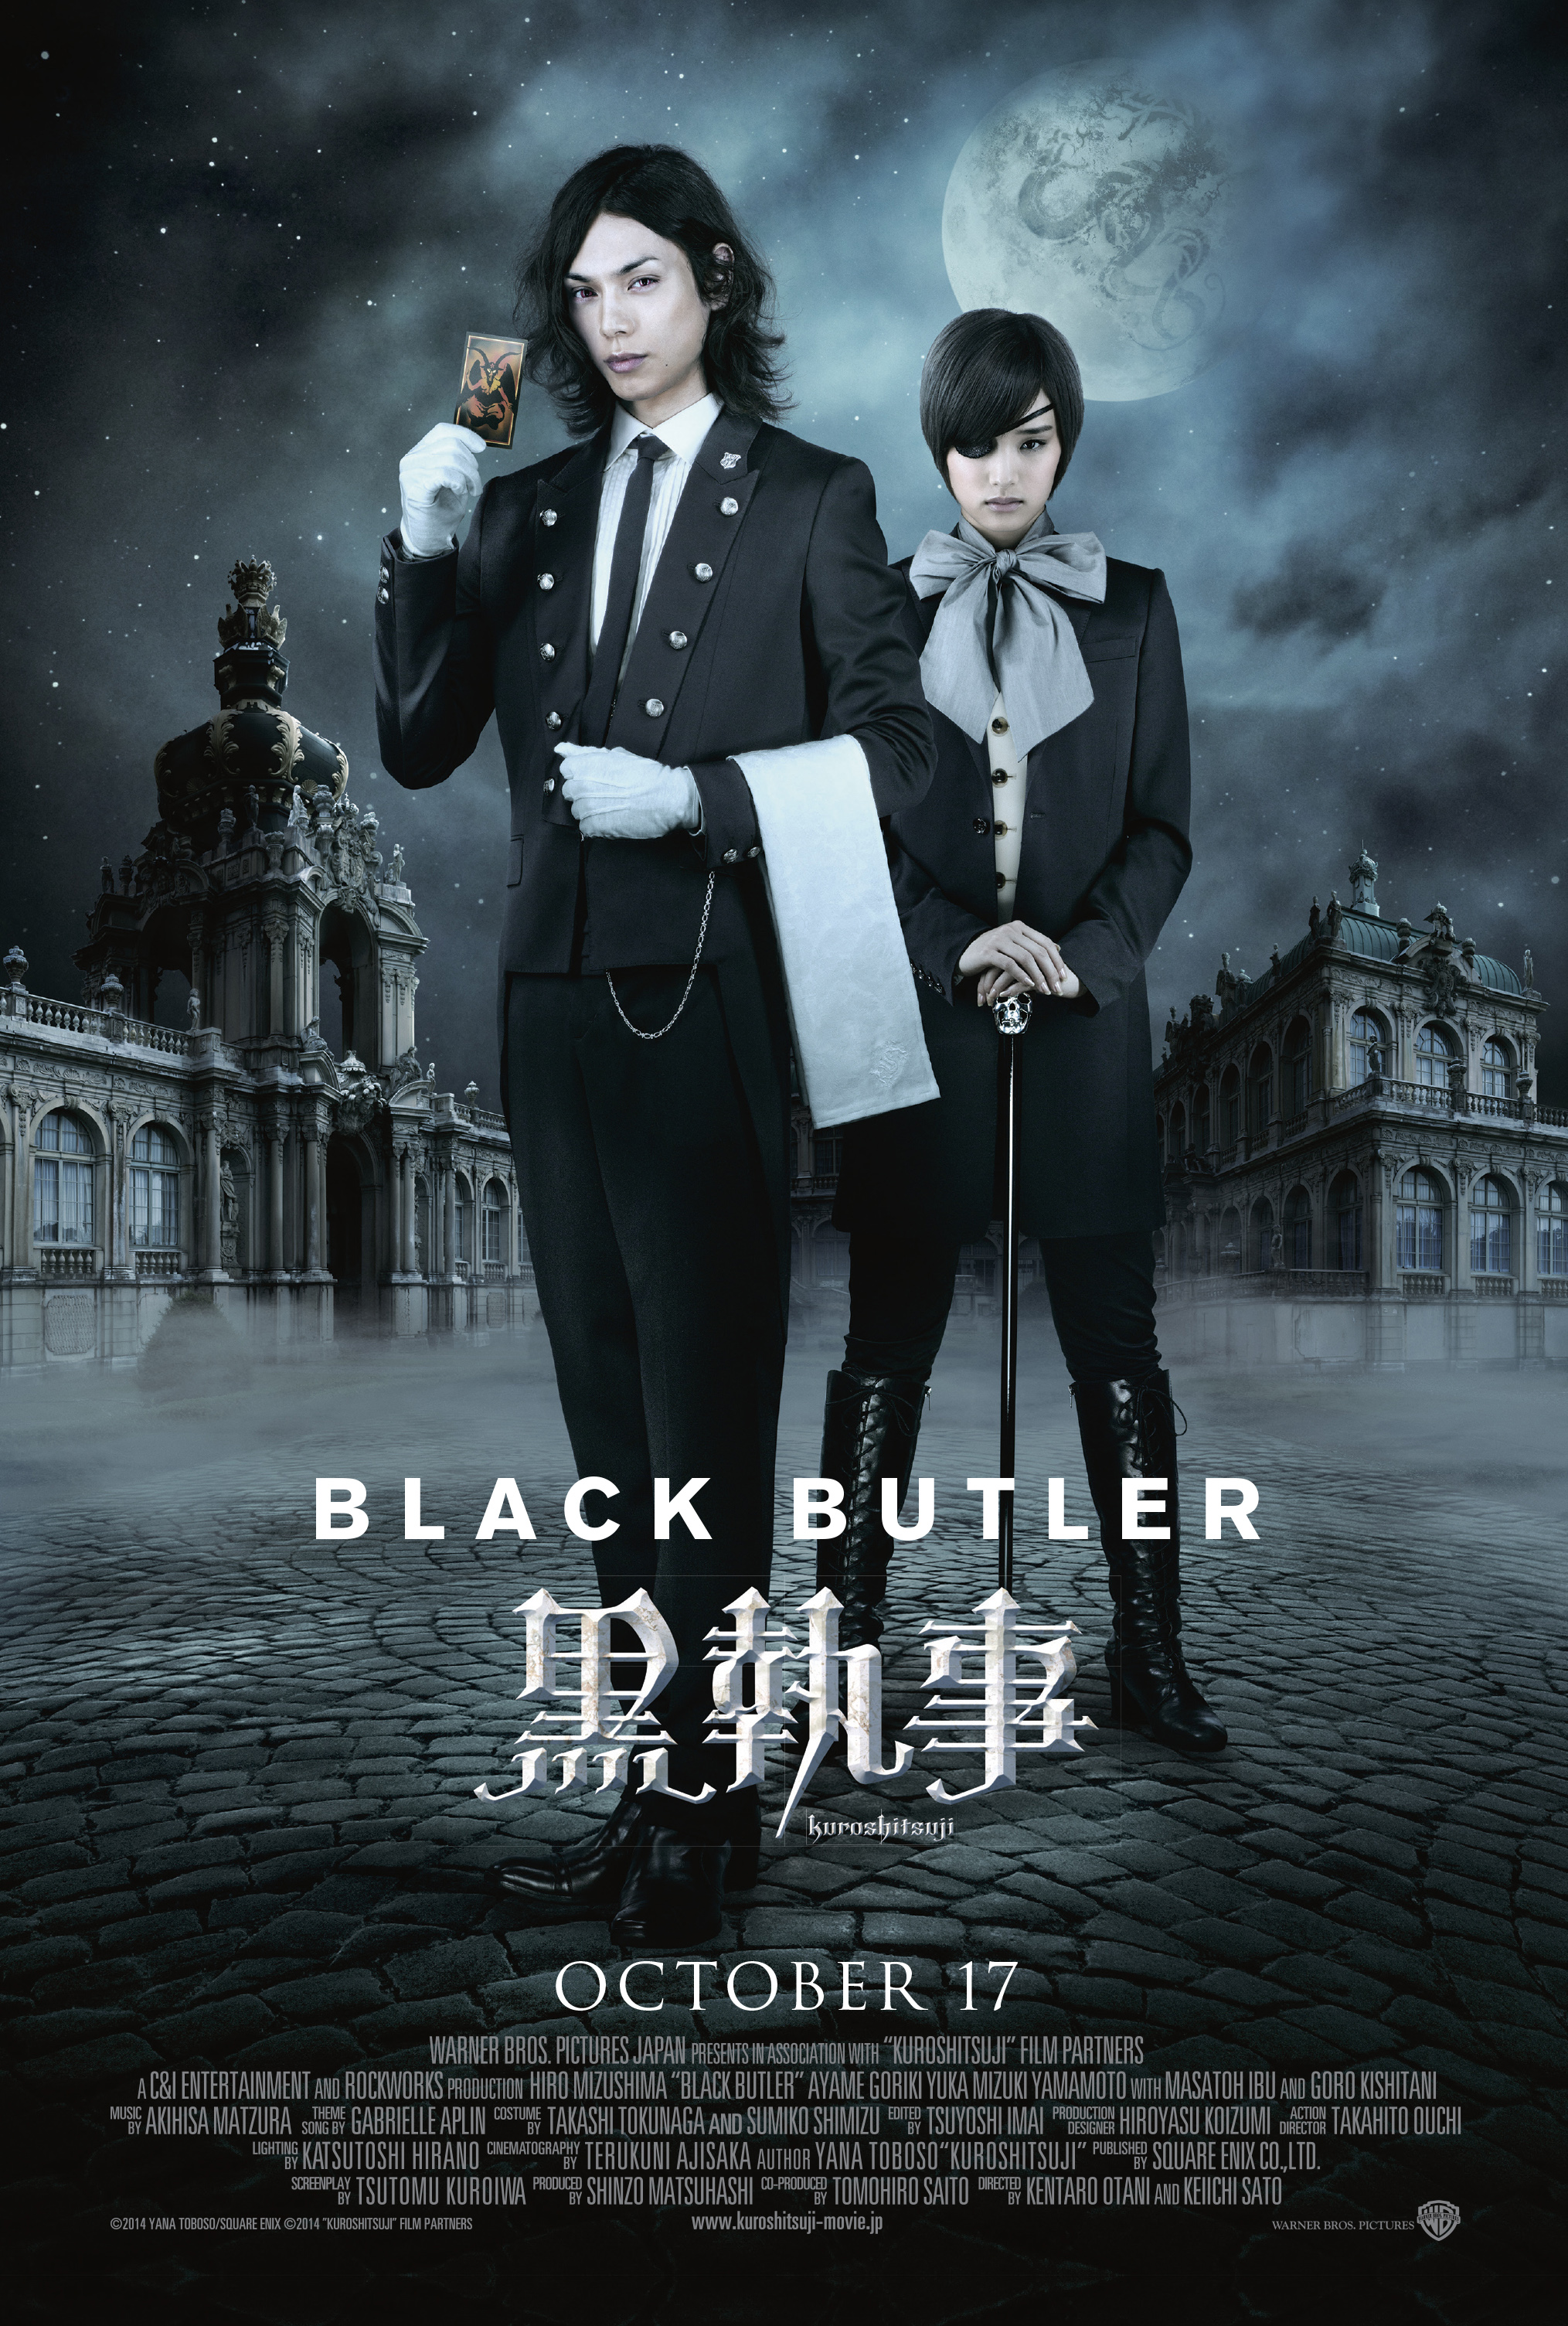 black butler comes to live action